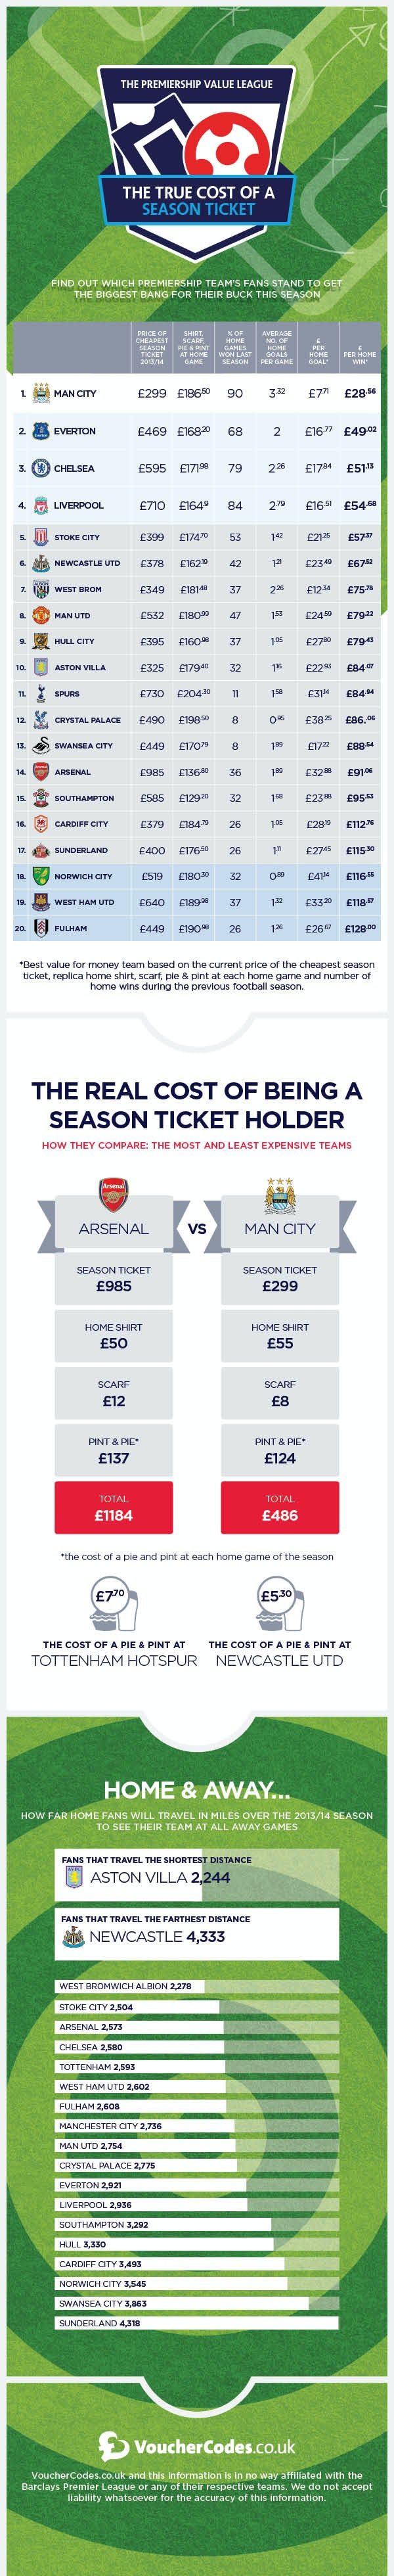 An infographic showing the Premiership Value League Table by VoucherCodes.co.uk